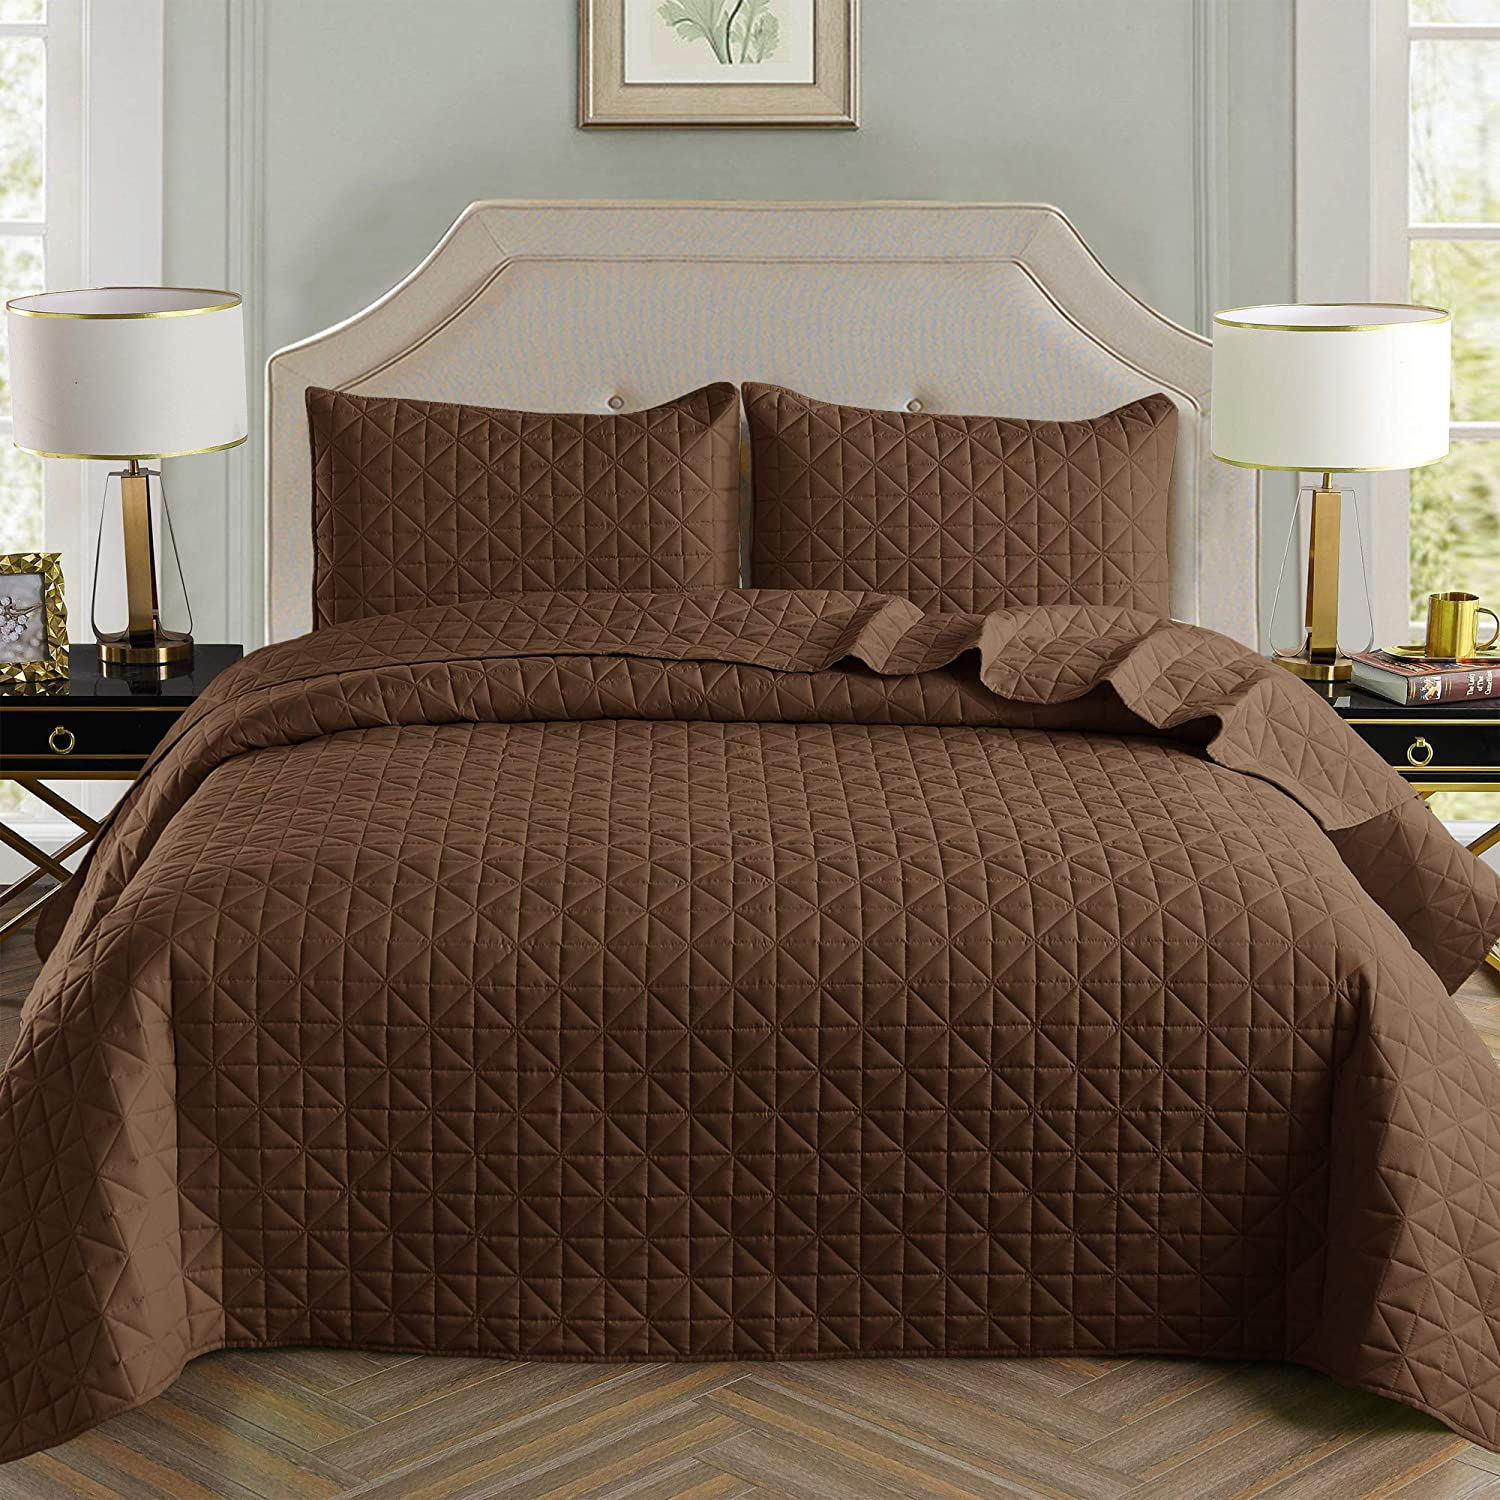 Exclusivo Mezcla 2-Piece Twin Size Quilt Set with One Pillow Sham, as Bedspread/Coverlet/Bed Cover(Grid Weave Brown) - Soft, Lightweight, Reversible& Hypoallergenic